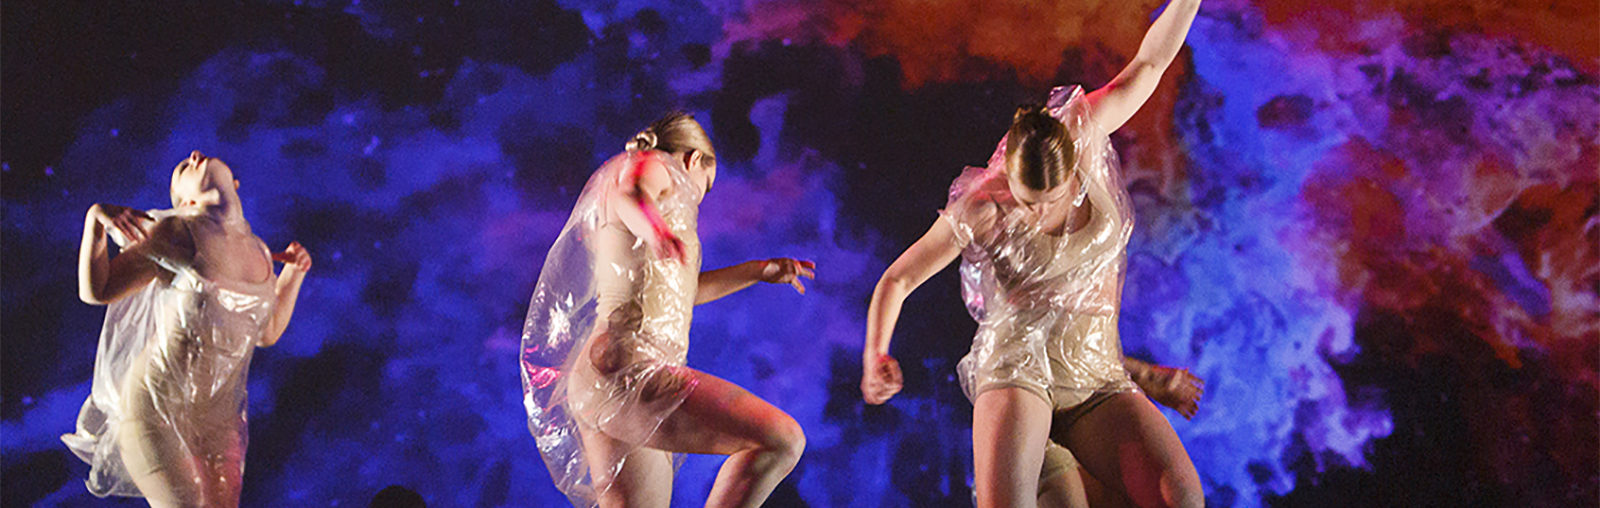 AMPD Featured image dance lighting and set design